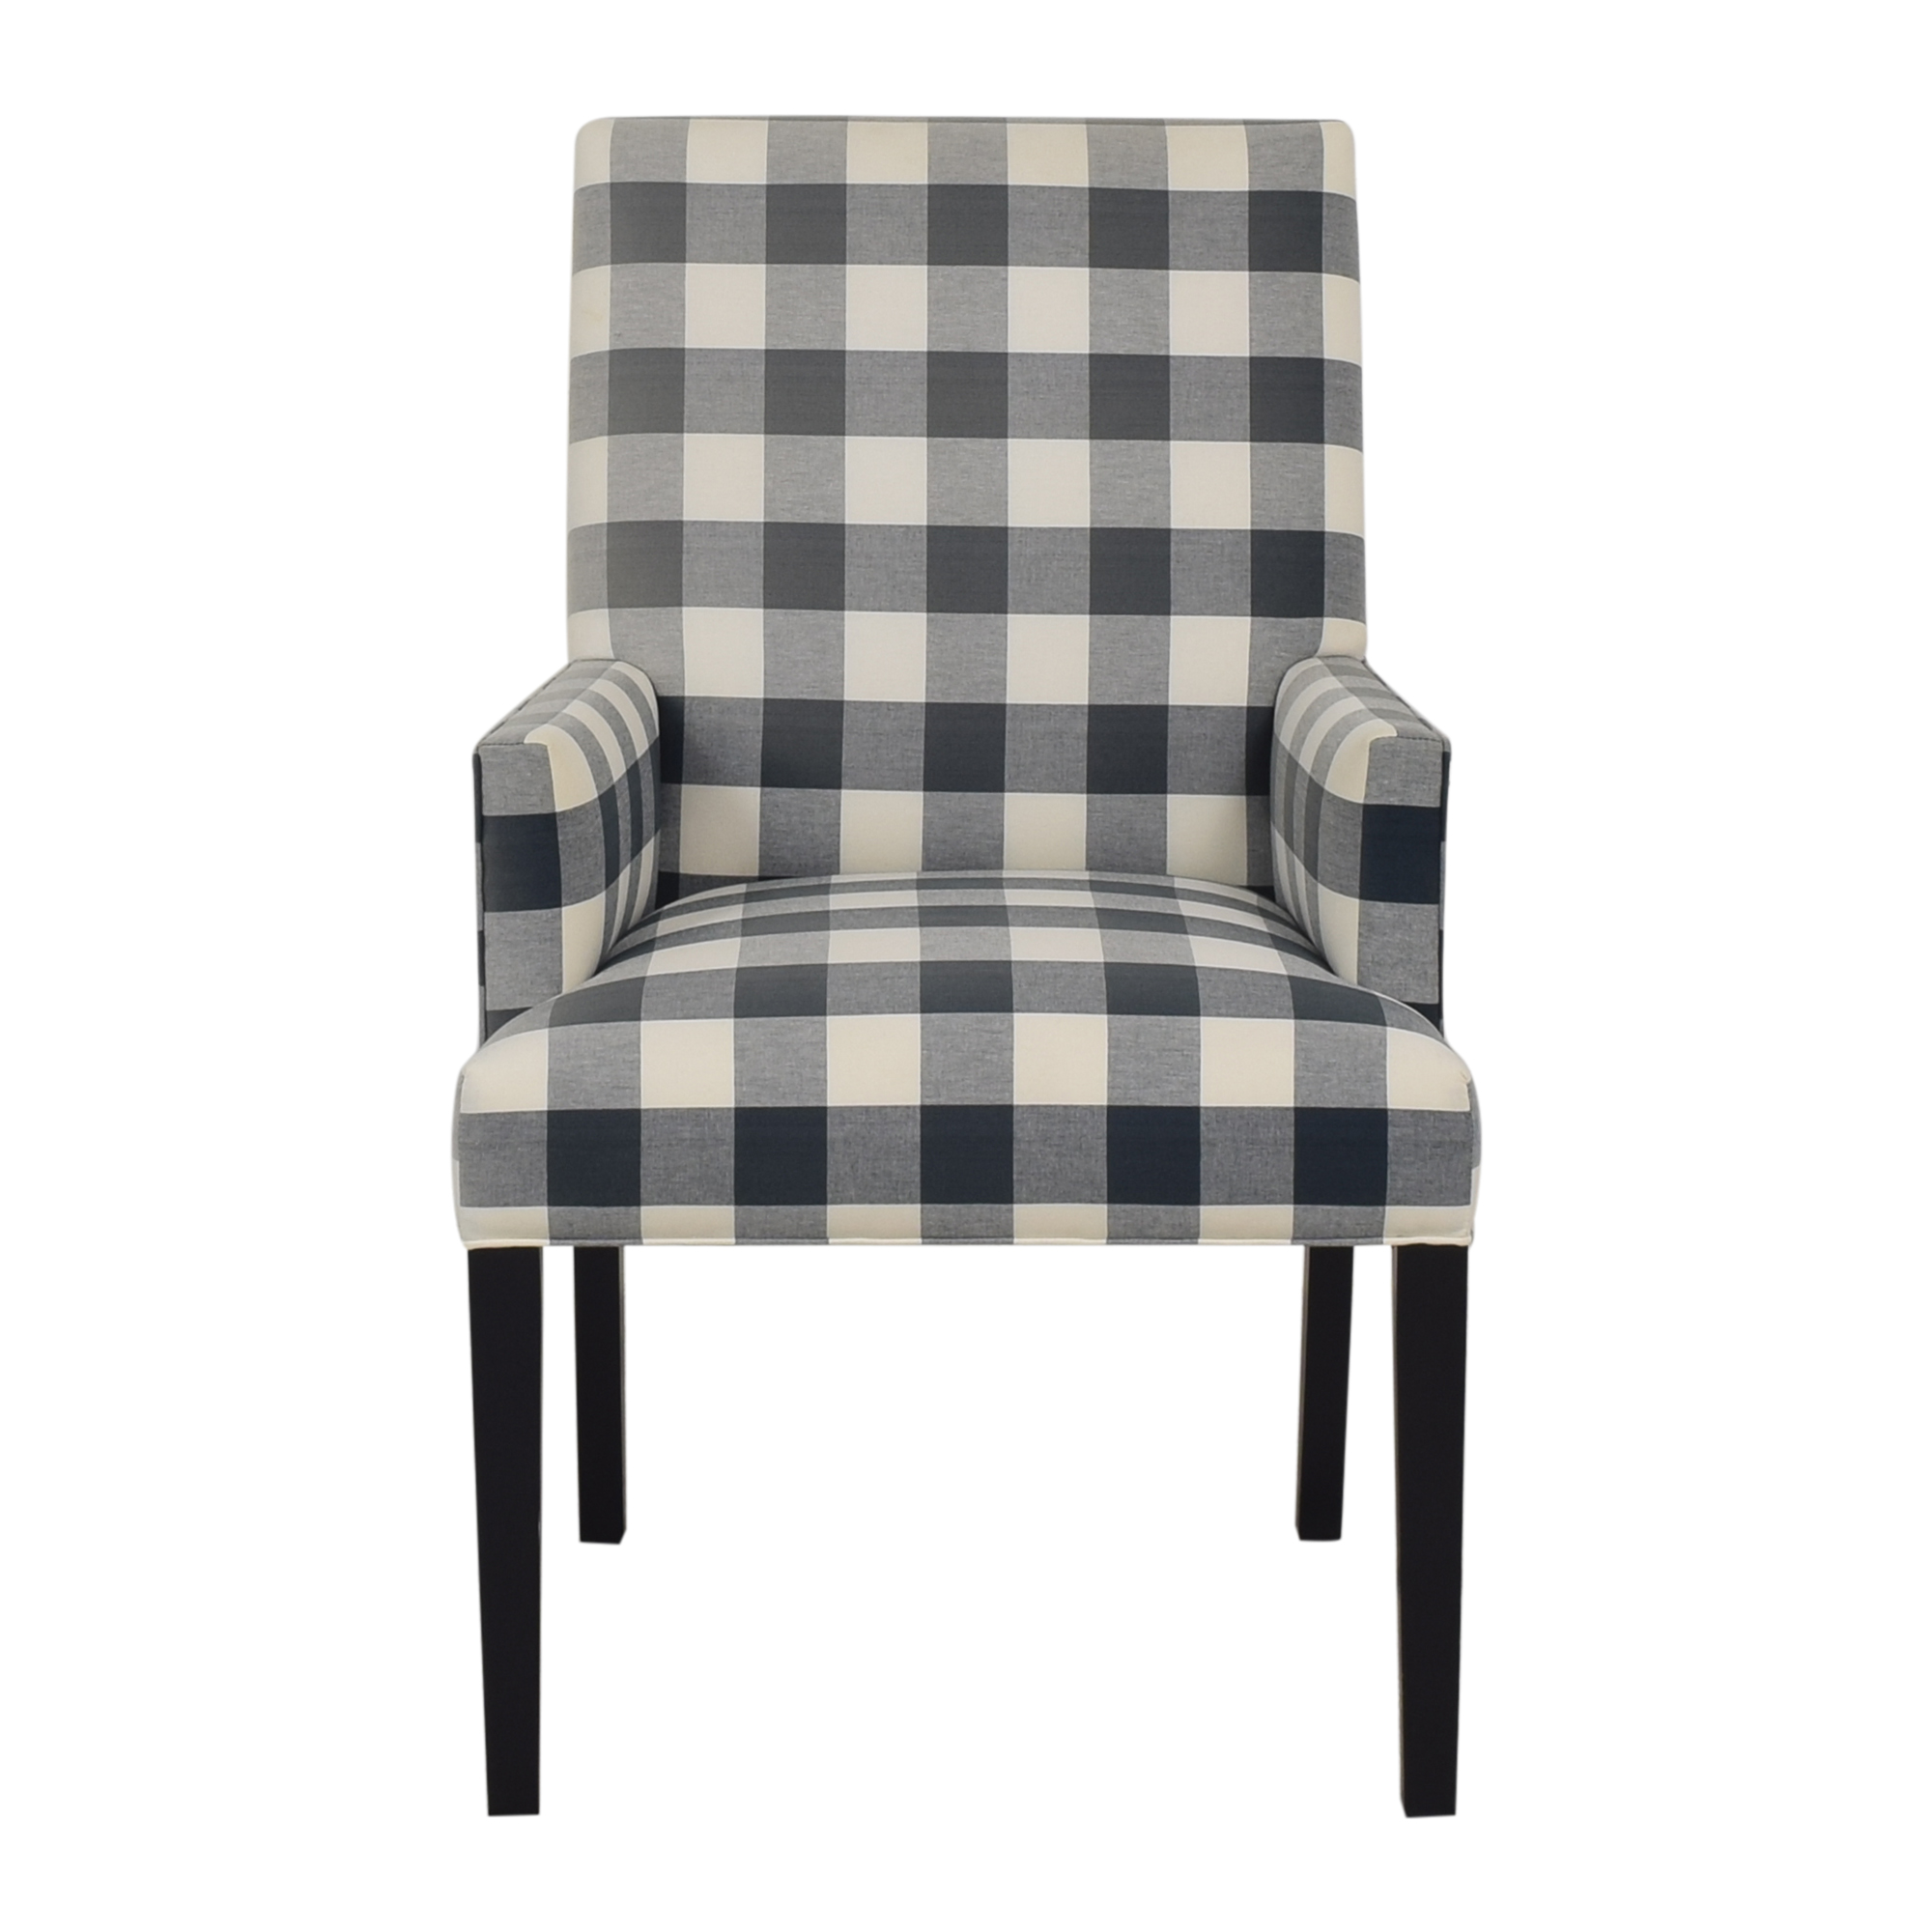 shop Ethan Allen Thomas Plaid Arm Chair Ethan Allen